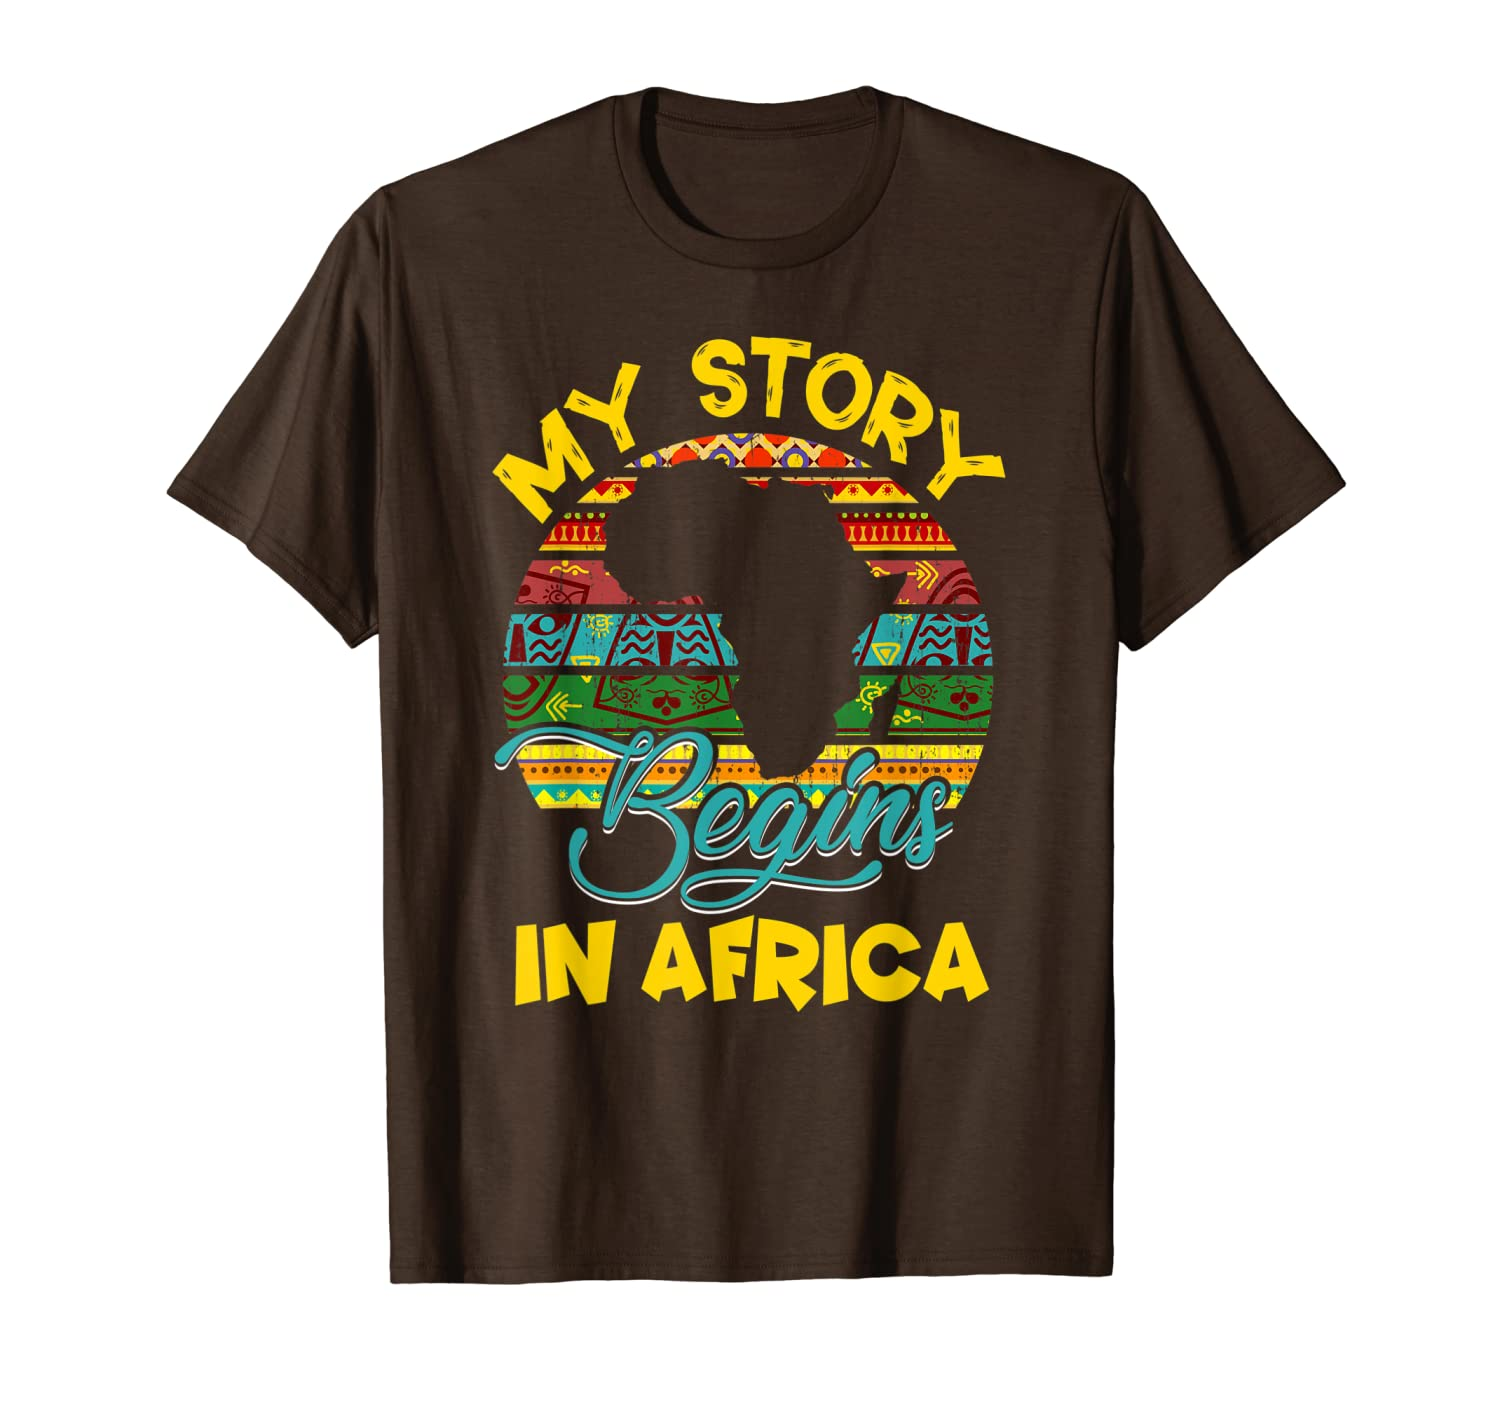 Story Begins In Africa Pride African-American History Month T-Shirt Unisex Tshirt